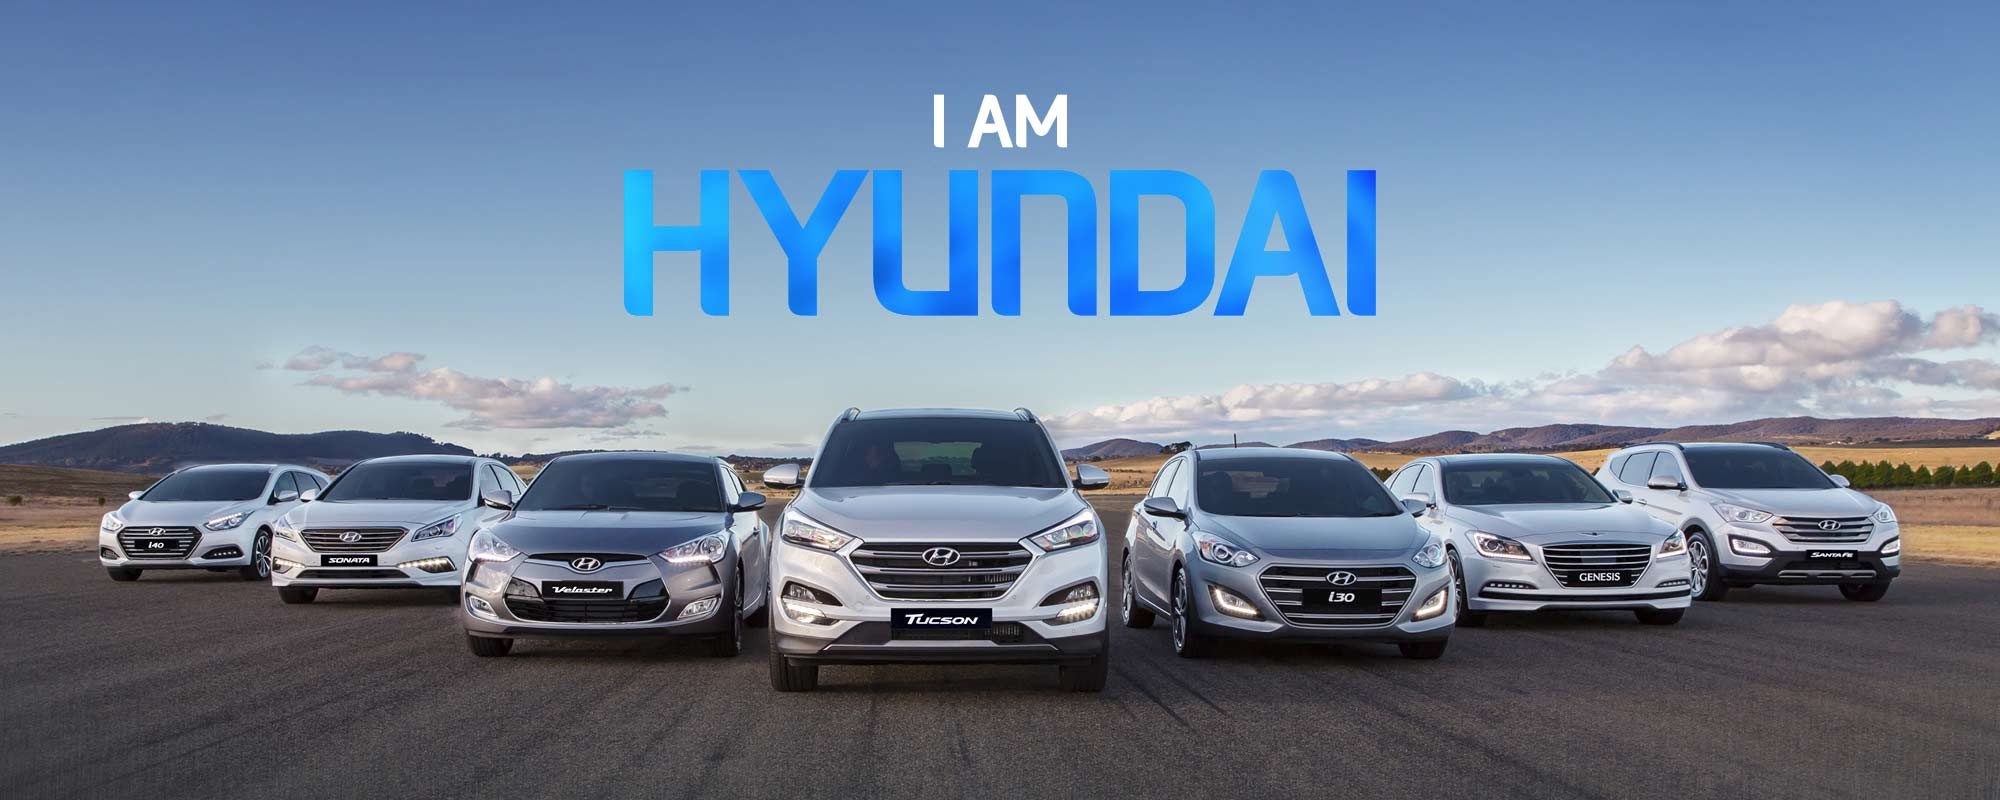 Full range of Hyundai models available at Brendale Hyundai.